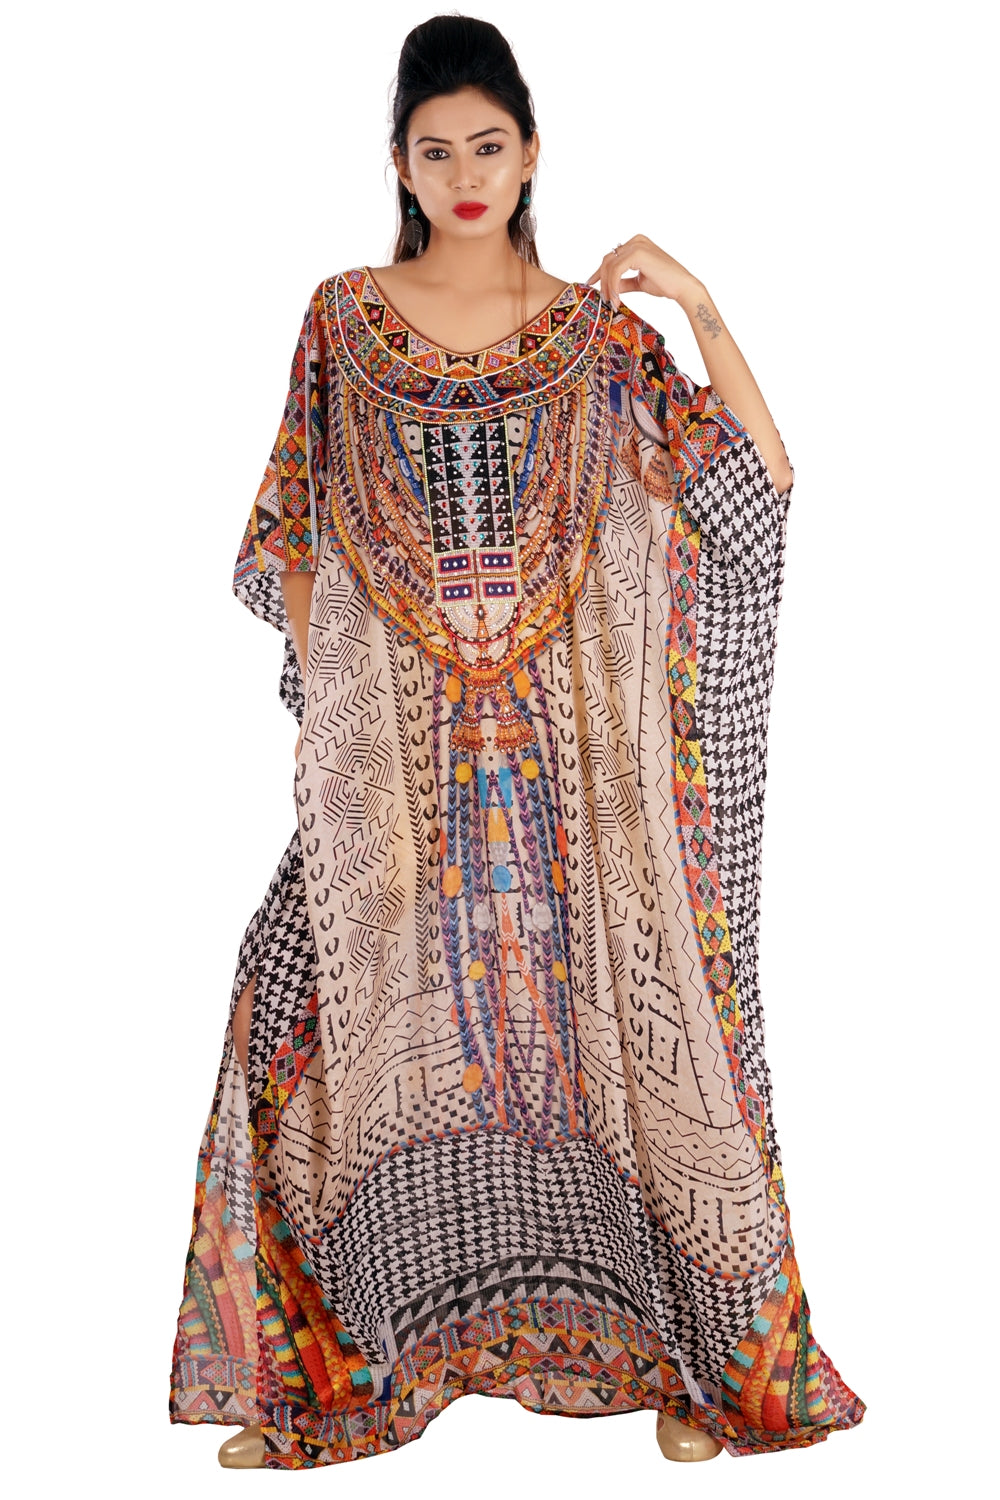 Self Expression Printed Silk Kaftan Cover-Ups with Geometric Patterns strewn over Luxe beach kaftan - Silk kaftan